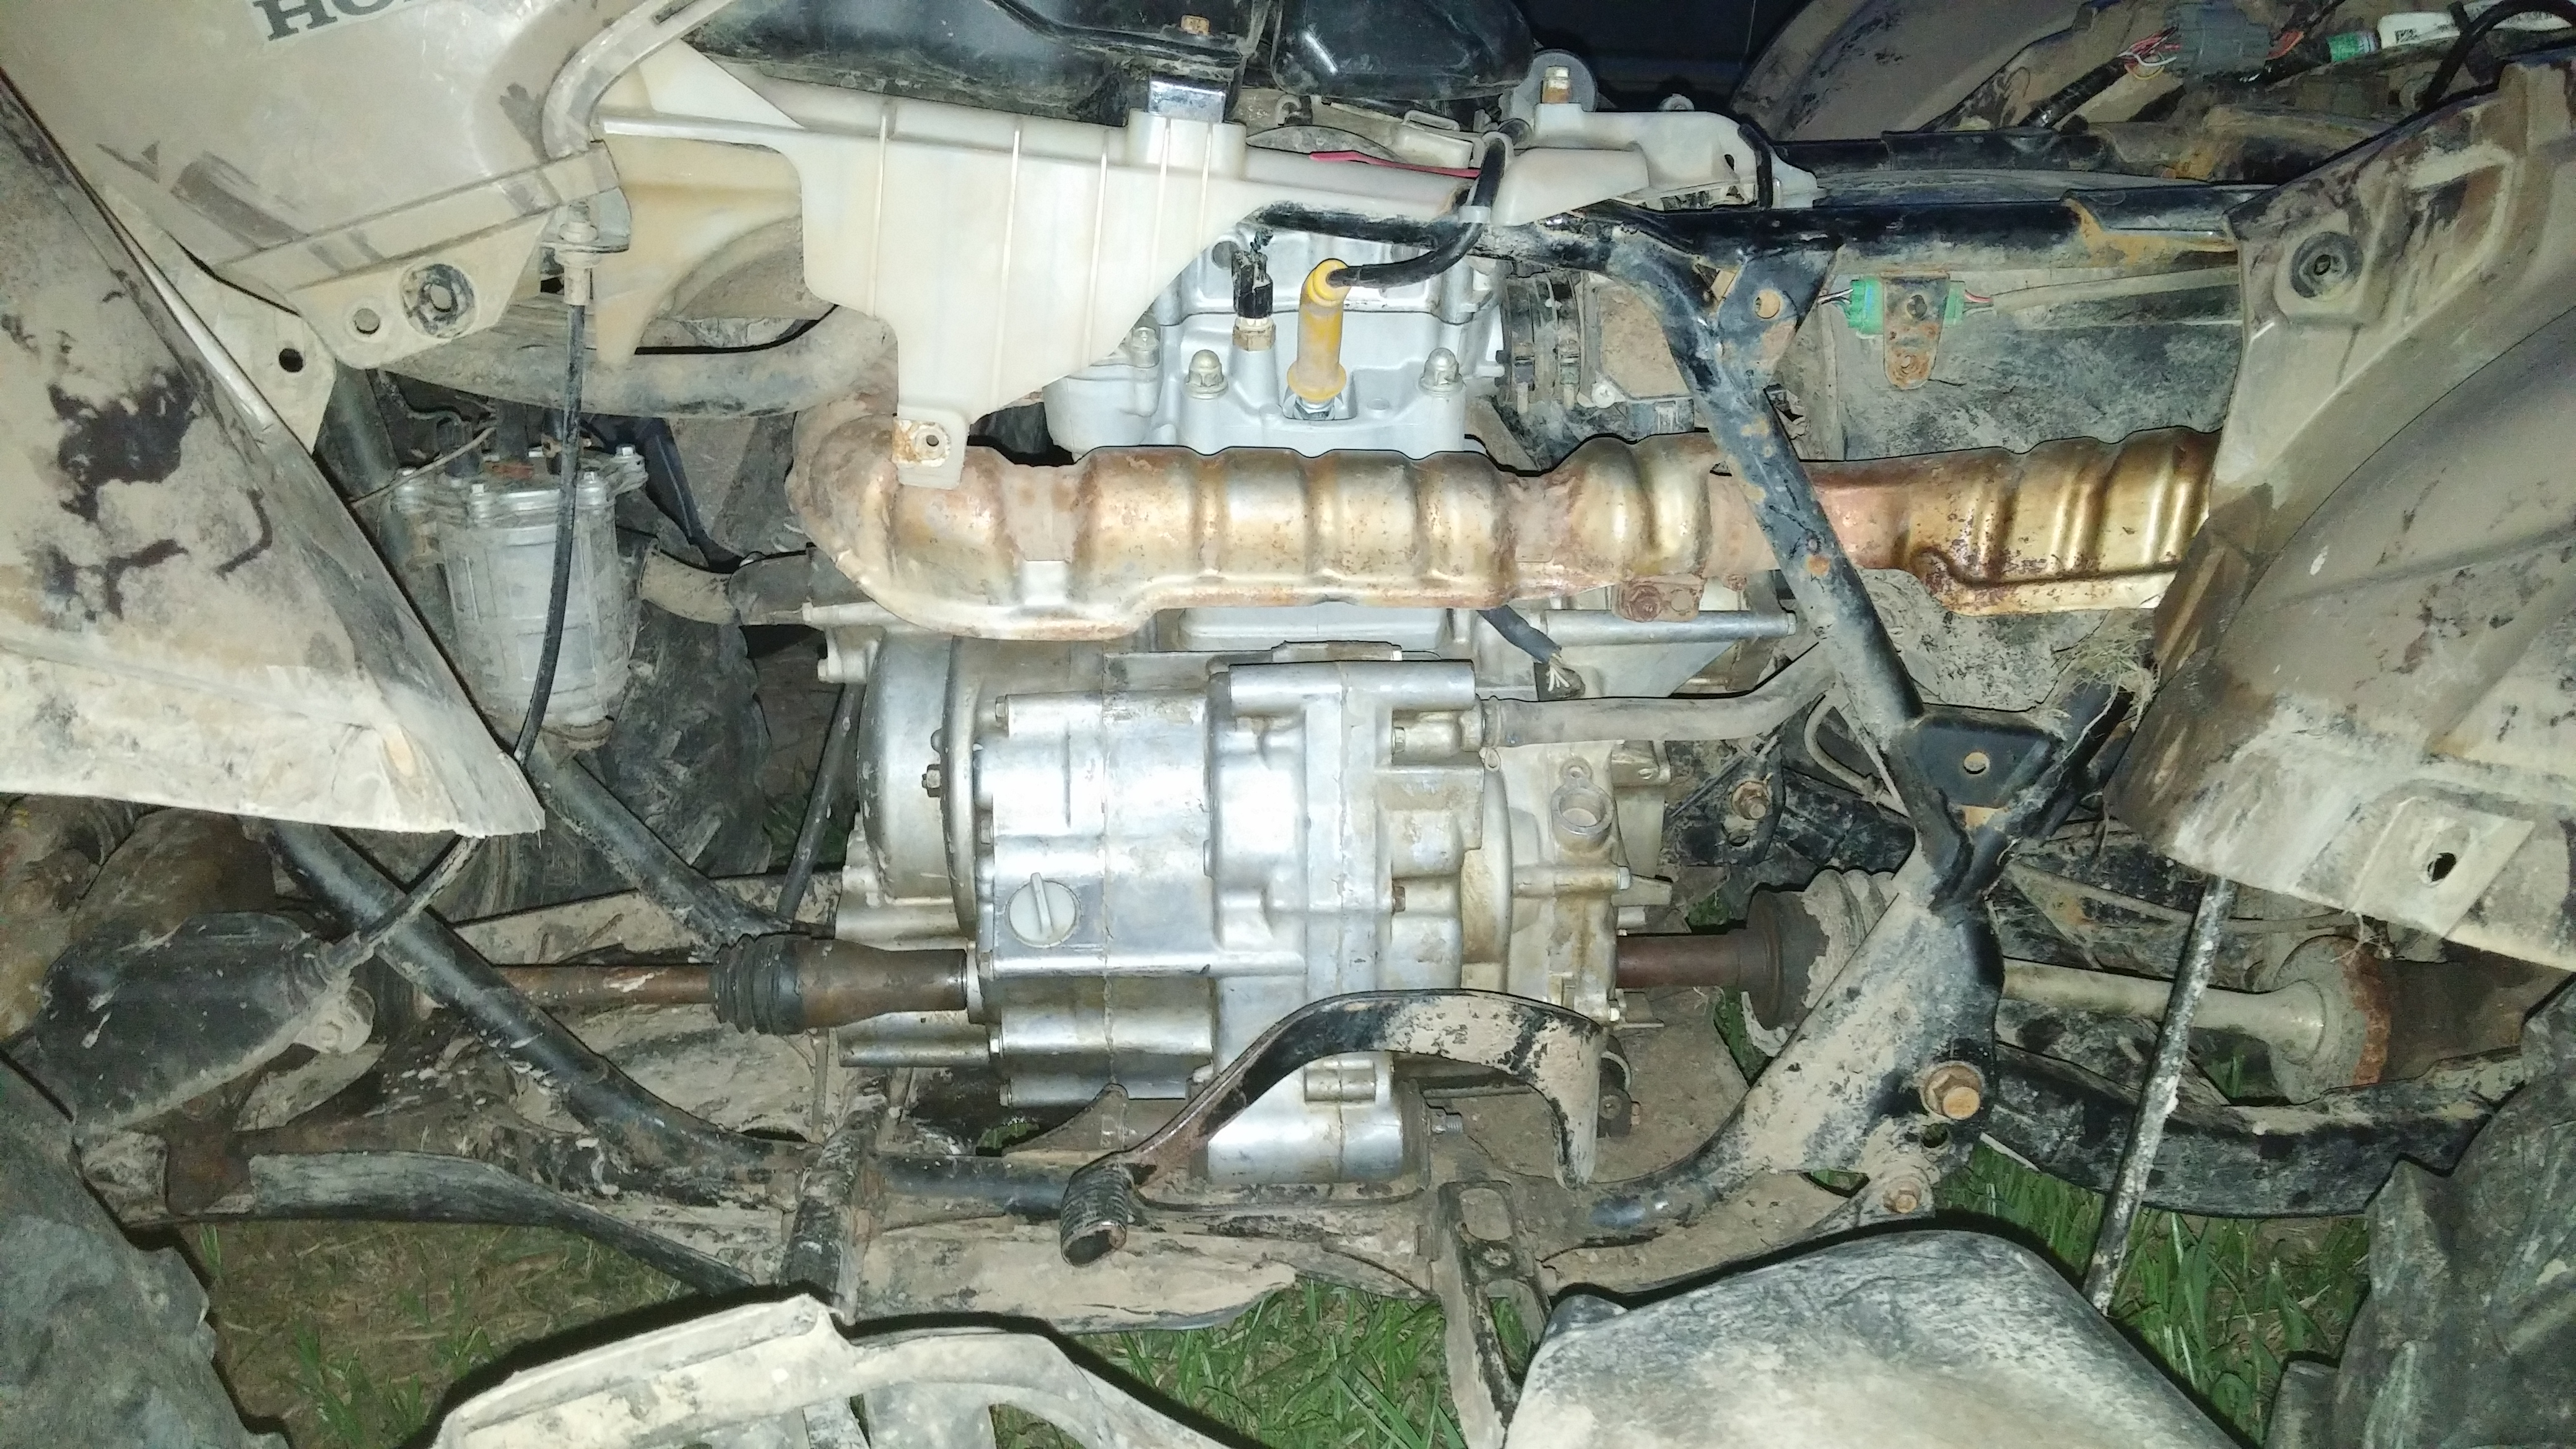 Fuel Pump Relay Location >> 2008 rancher 420fm electric issue(with pics) - Honda ATV Forum